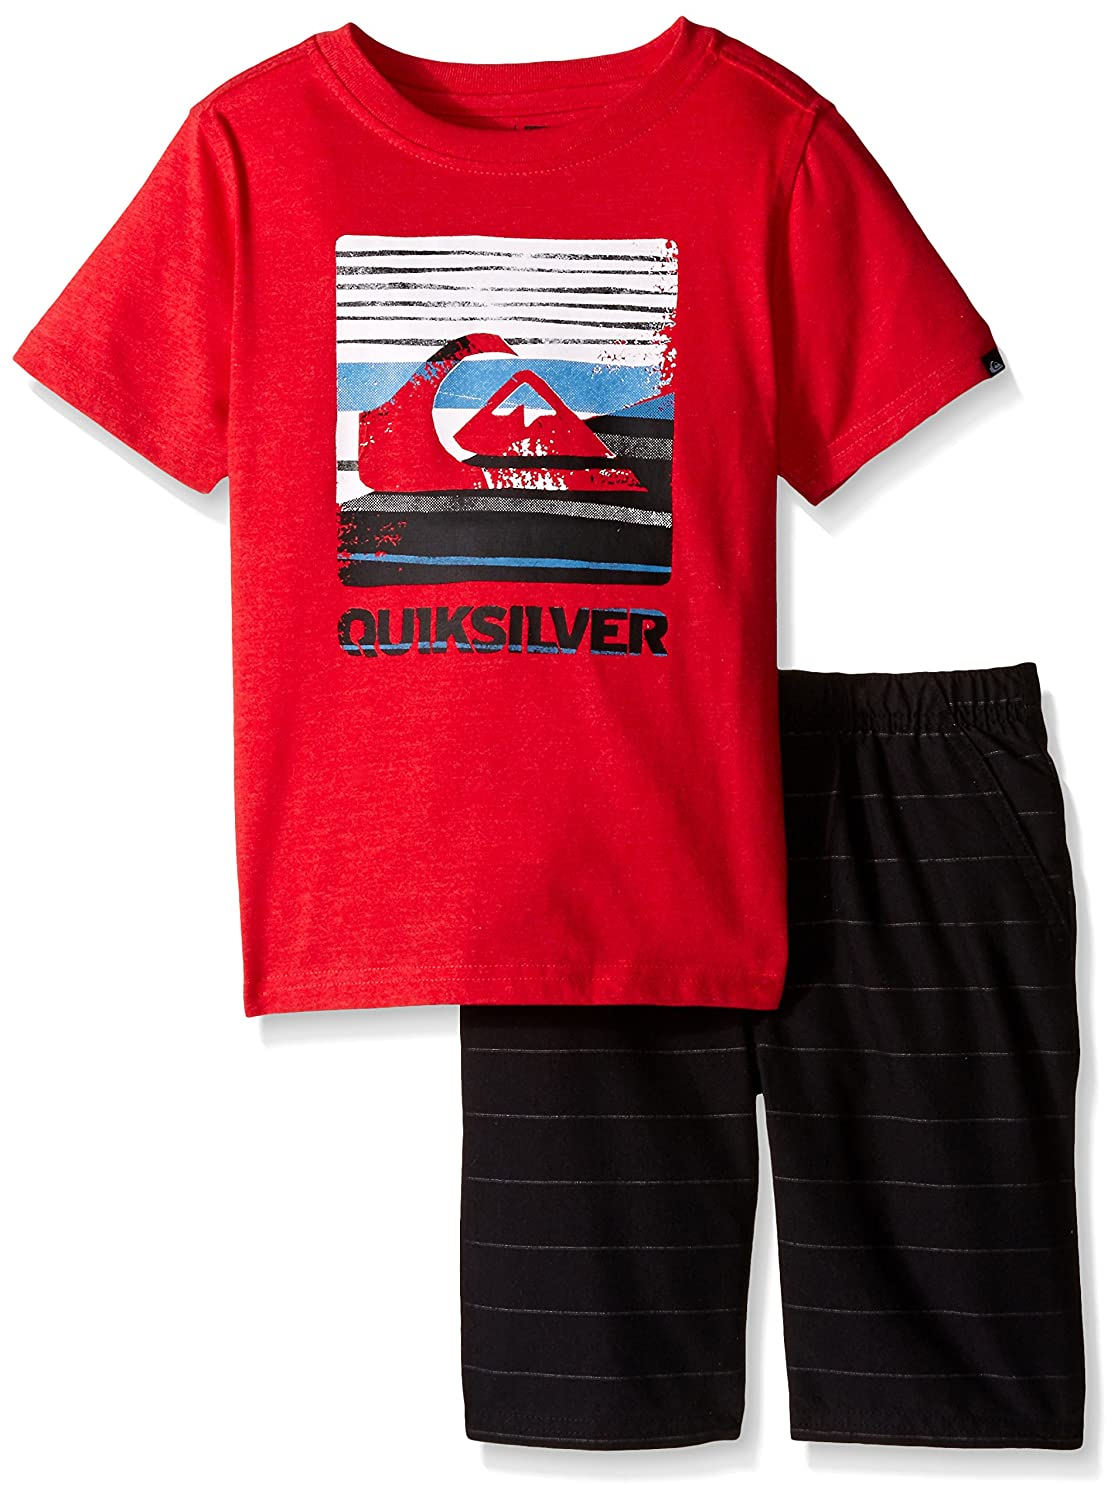 Quiksilver Little Boys' 2 Piece Graphic Tee with Short Set Quiksilver Boys 2-7 QUISBA-200A